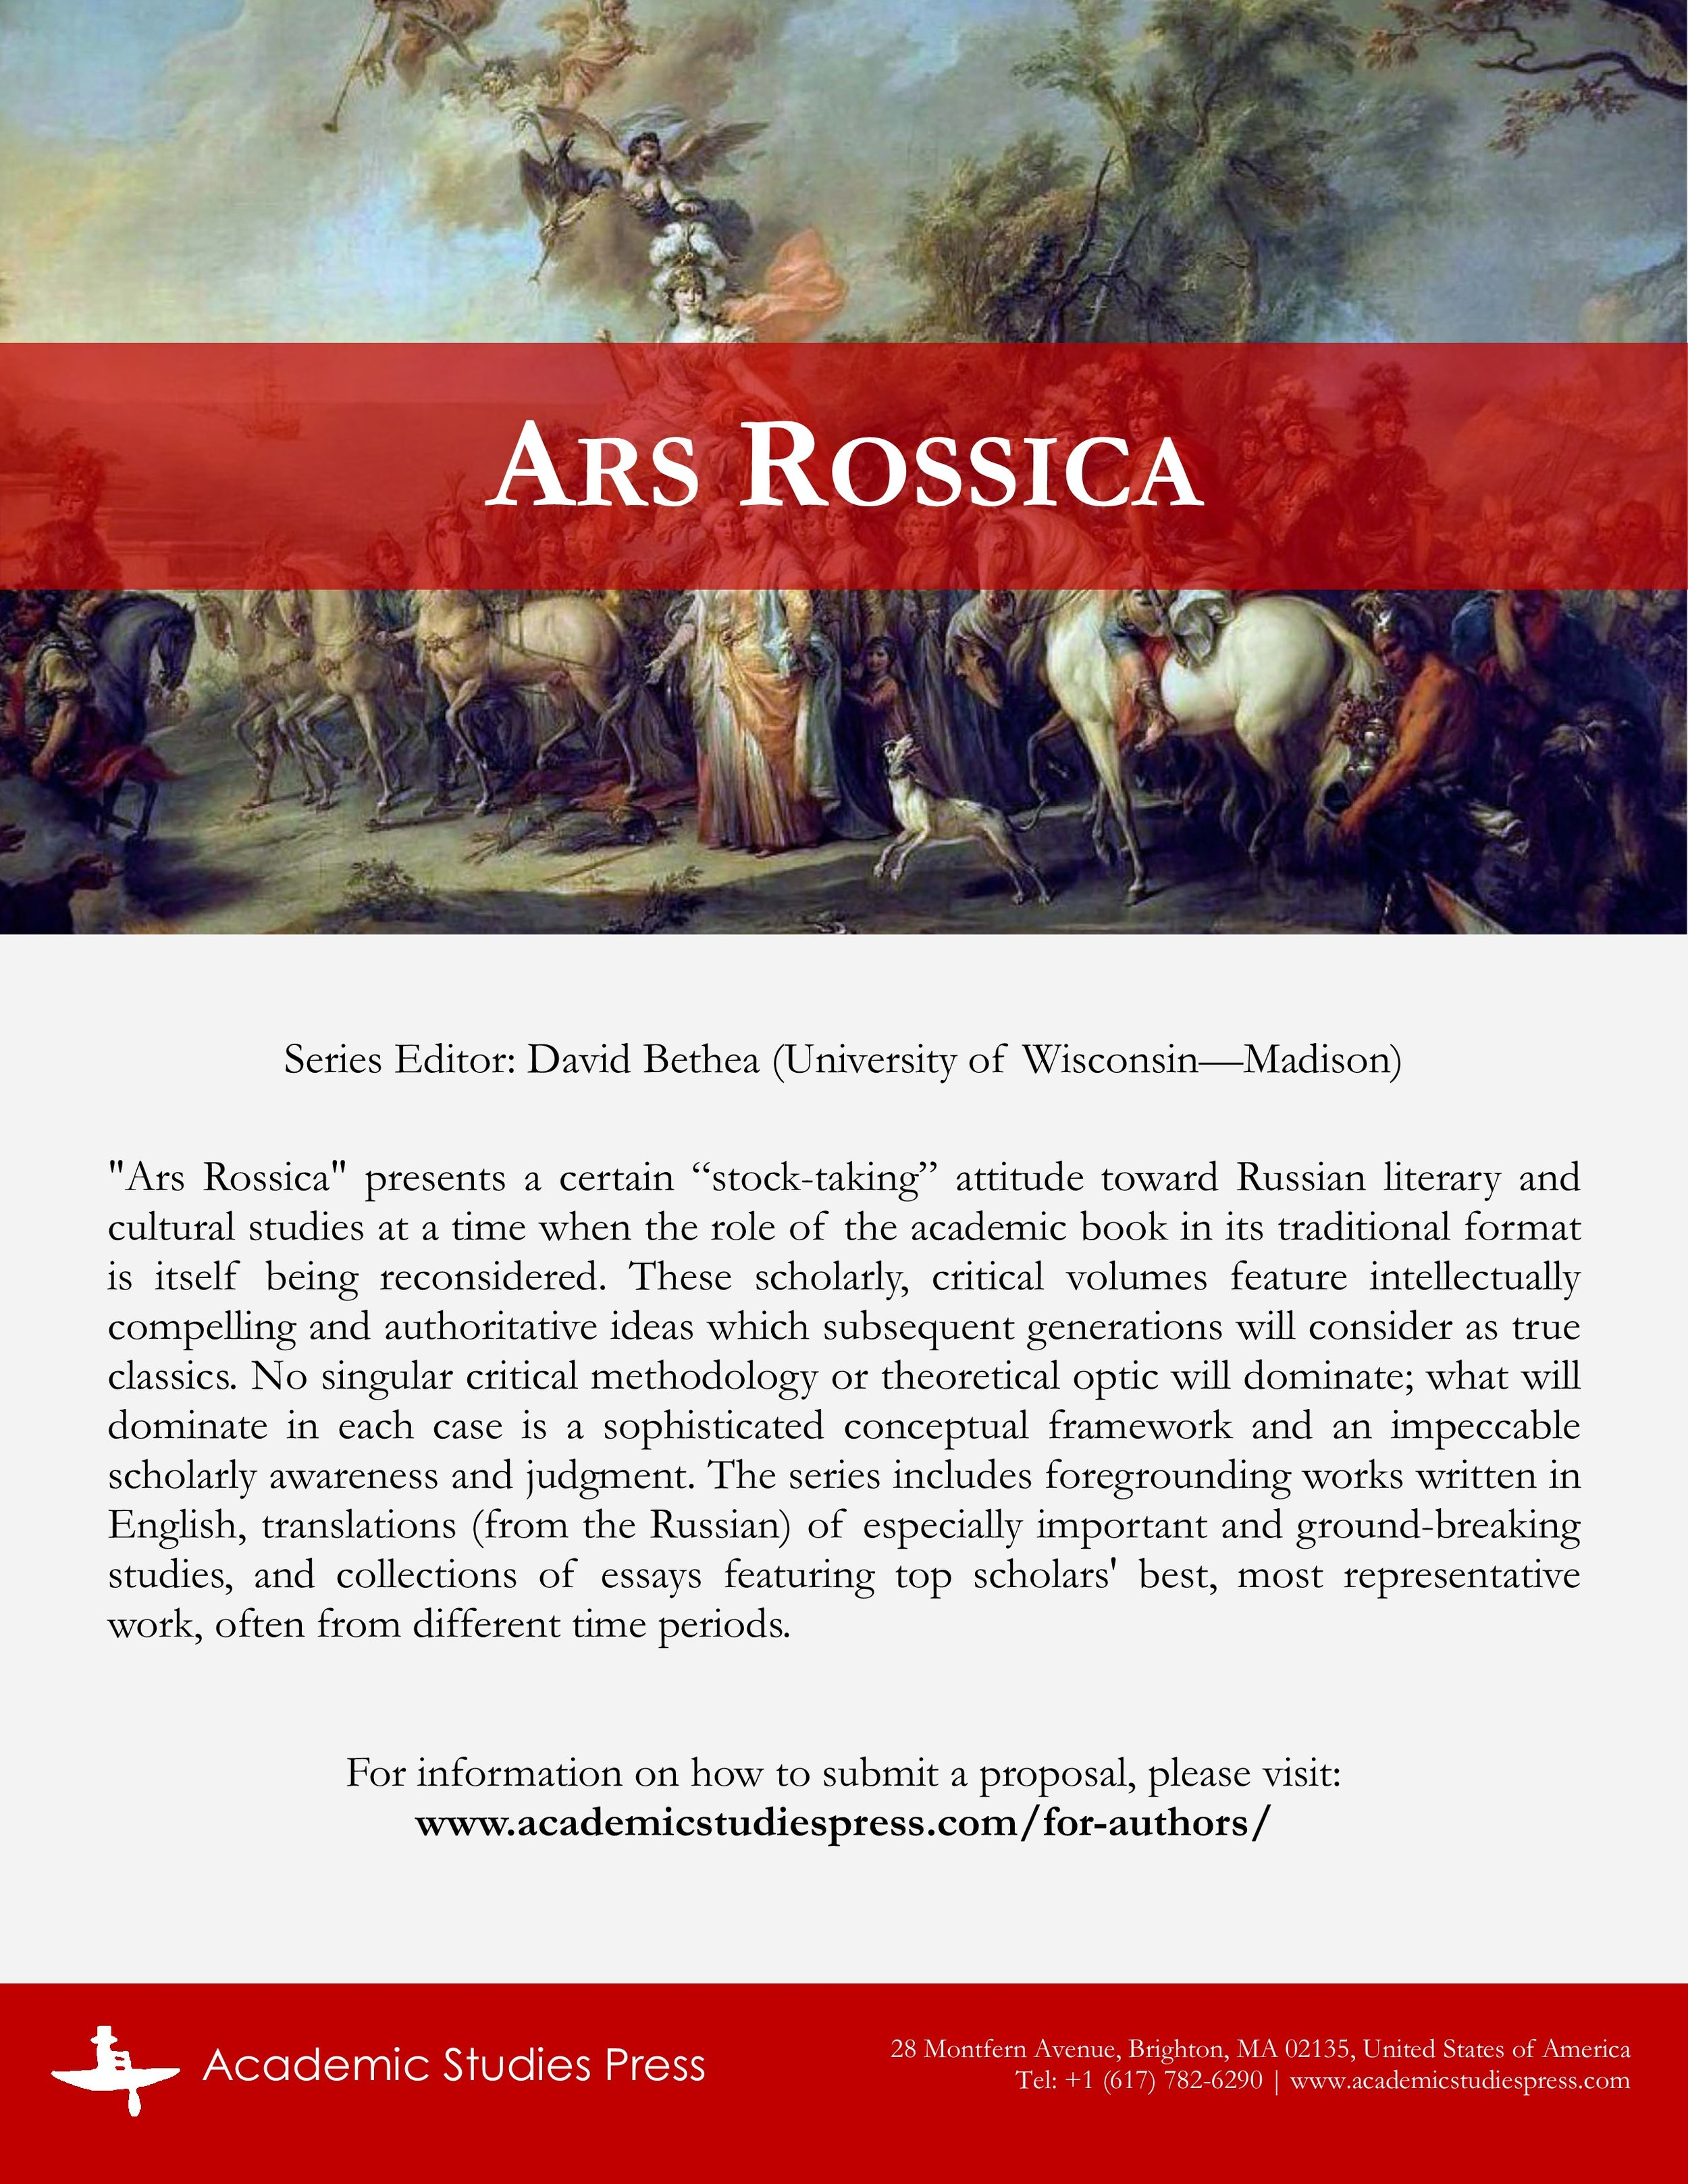 Ars Rossica Flyer